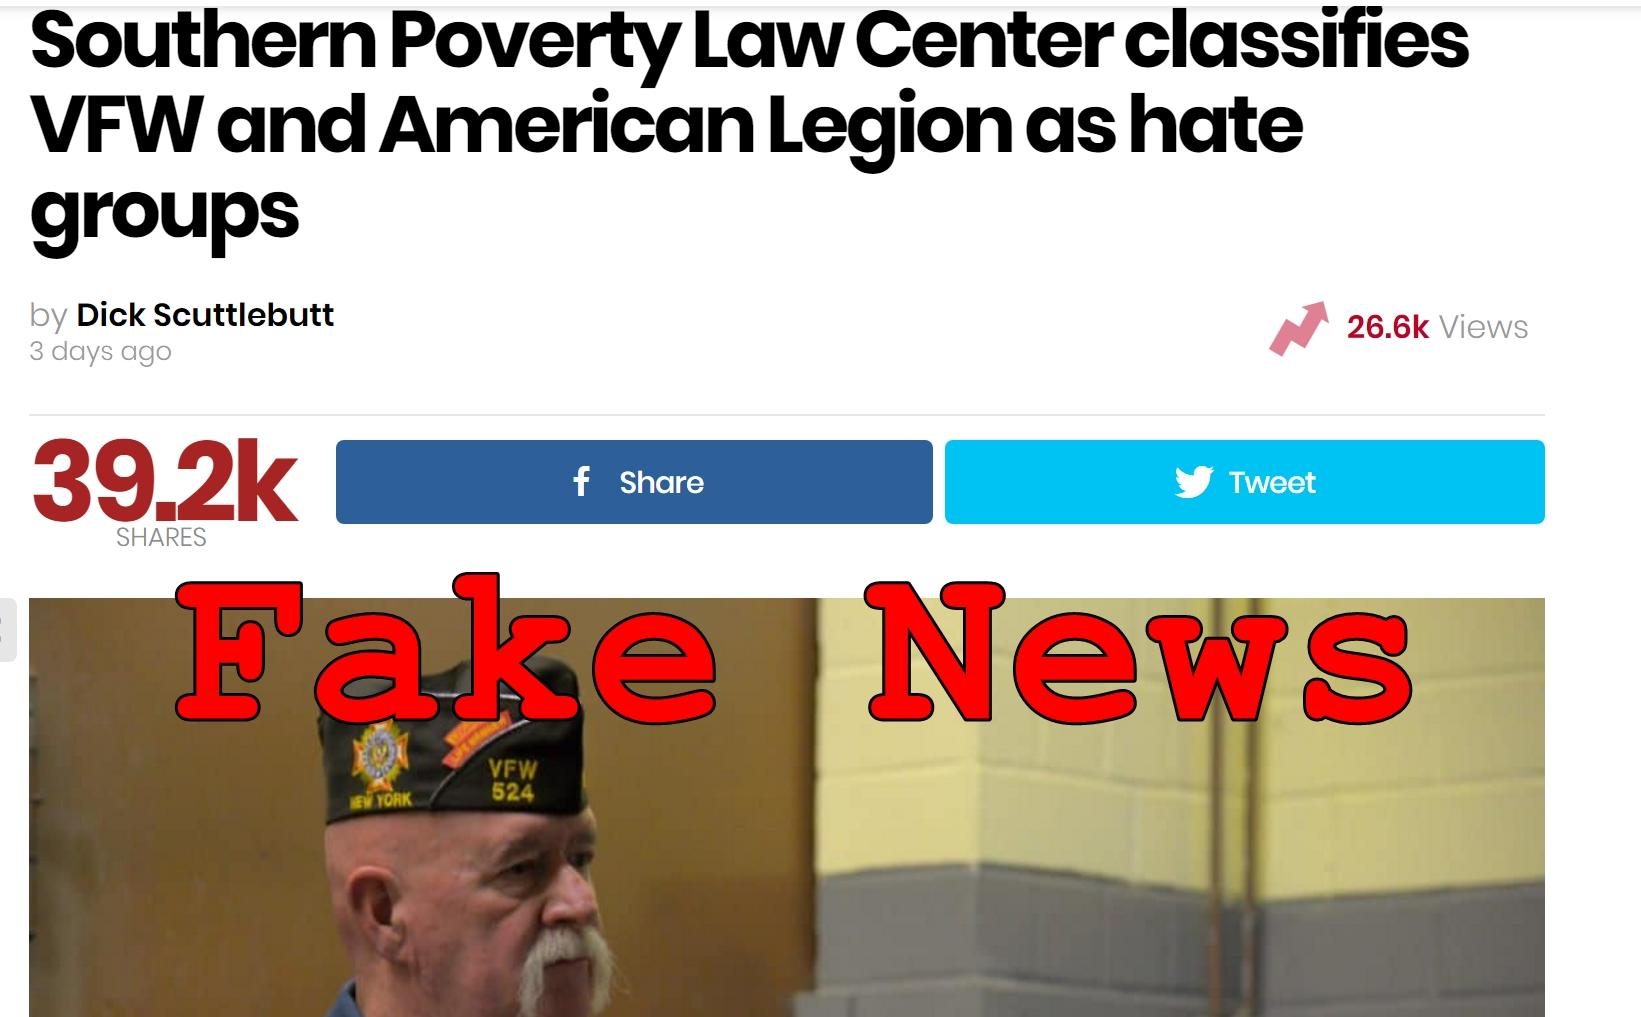 Fake News: Southern Poverty Law Center Did NOT Classify VFW And American Legion As Hate Groups